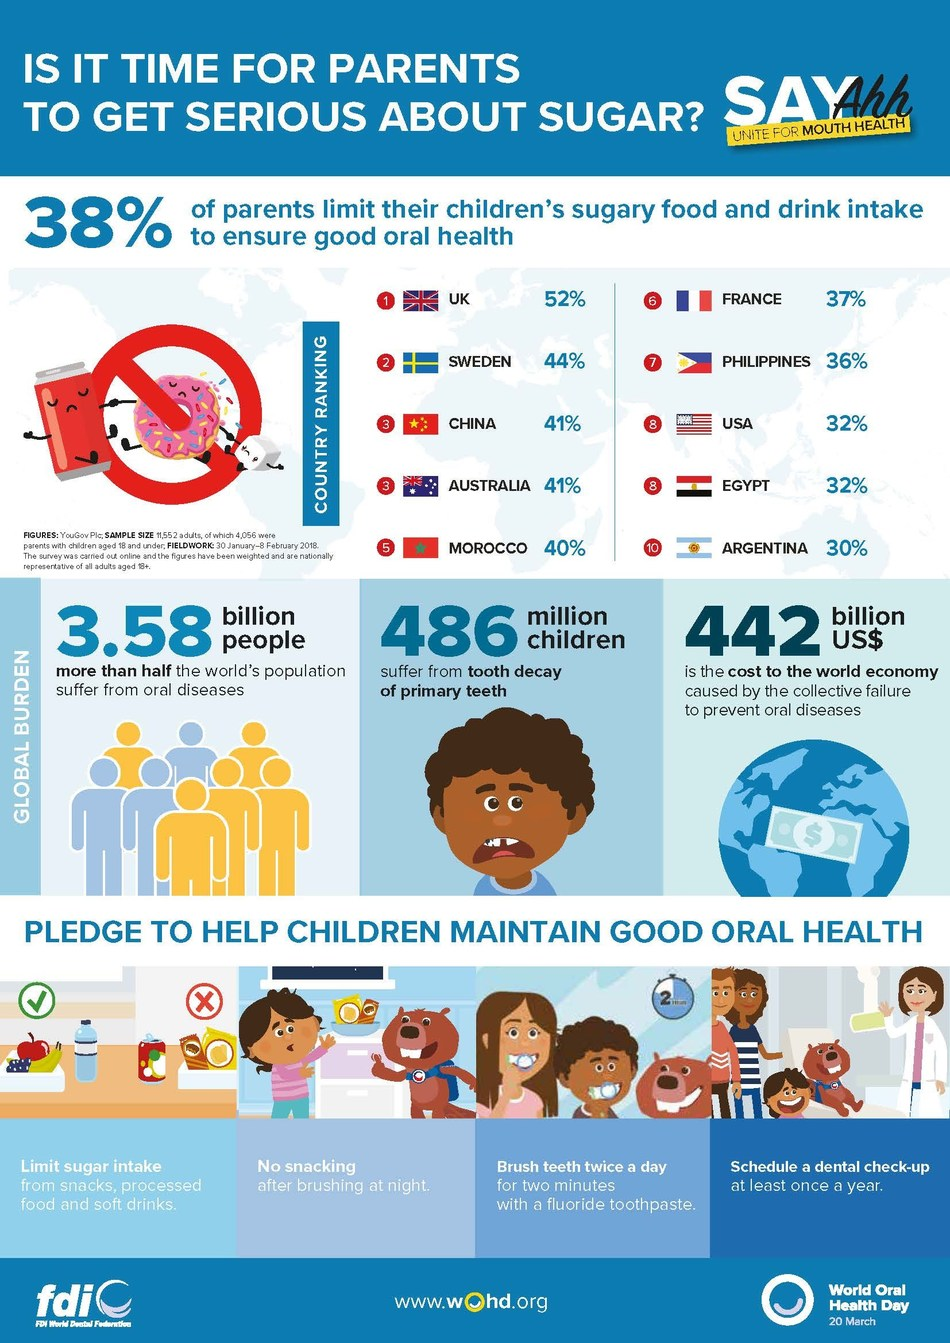 World Oral Health Day 2020: is it time for parents to get serious about sugar? (PRNewsfoto/FDI World Dental Federation)